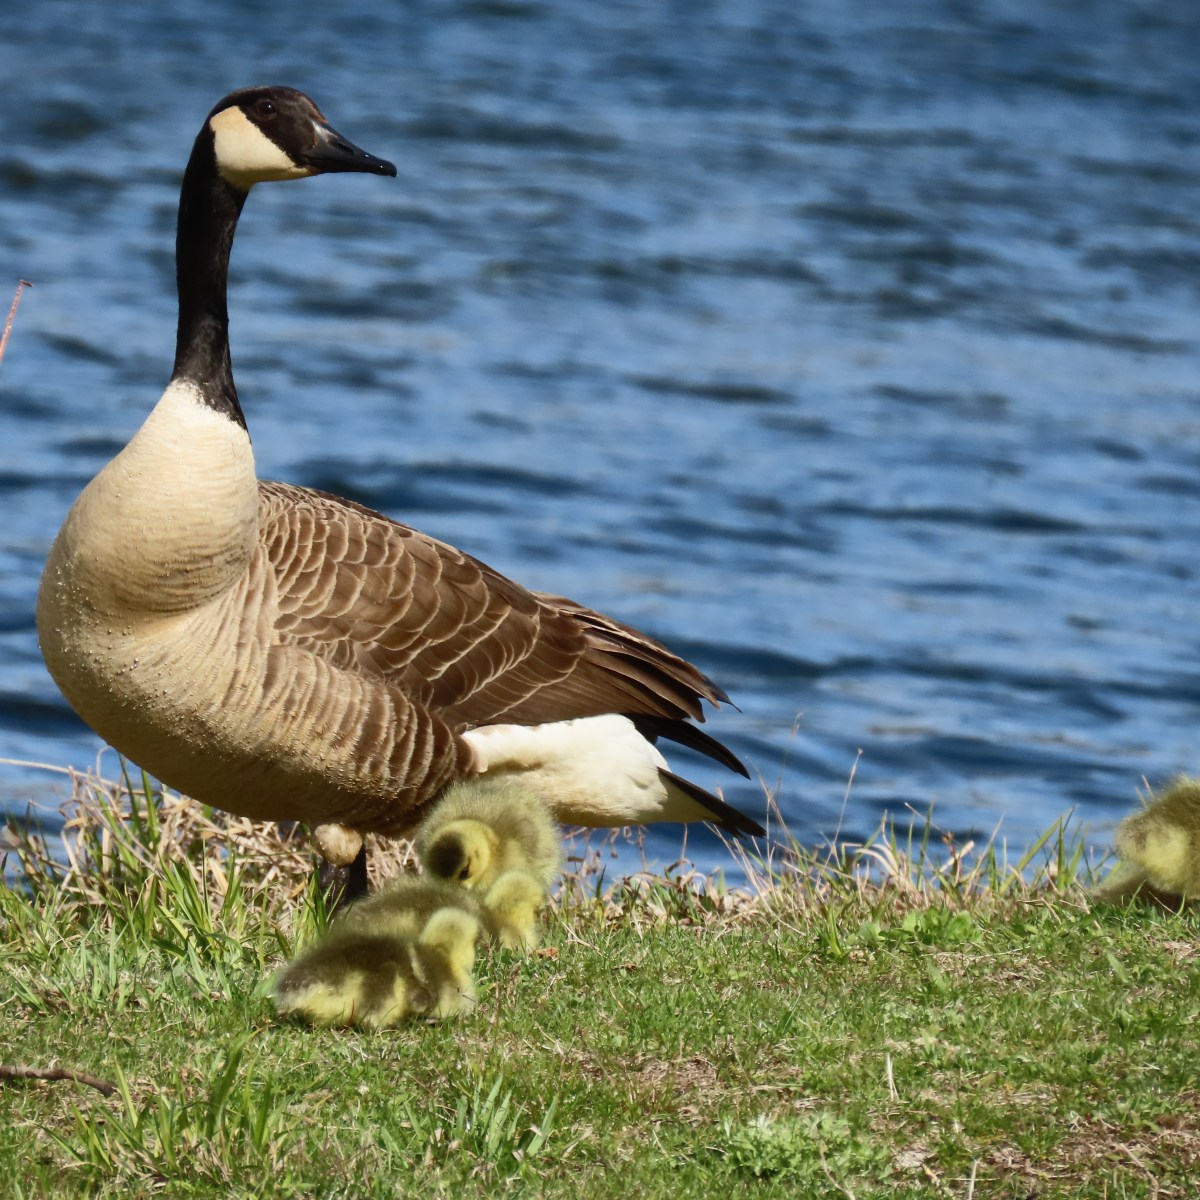 A goose with its goslings near the water surveys their surroundings